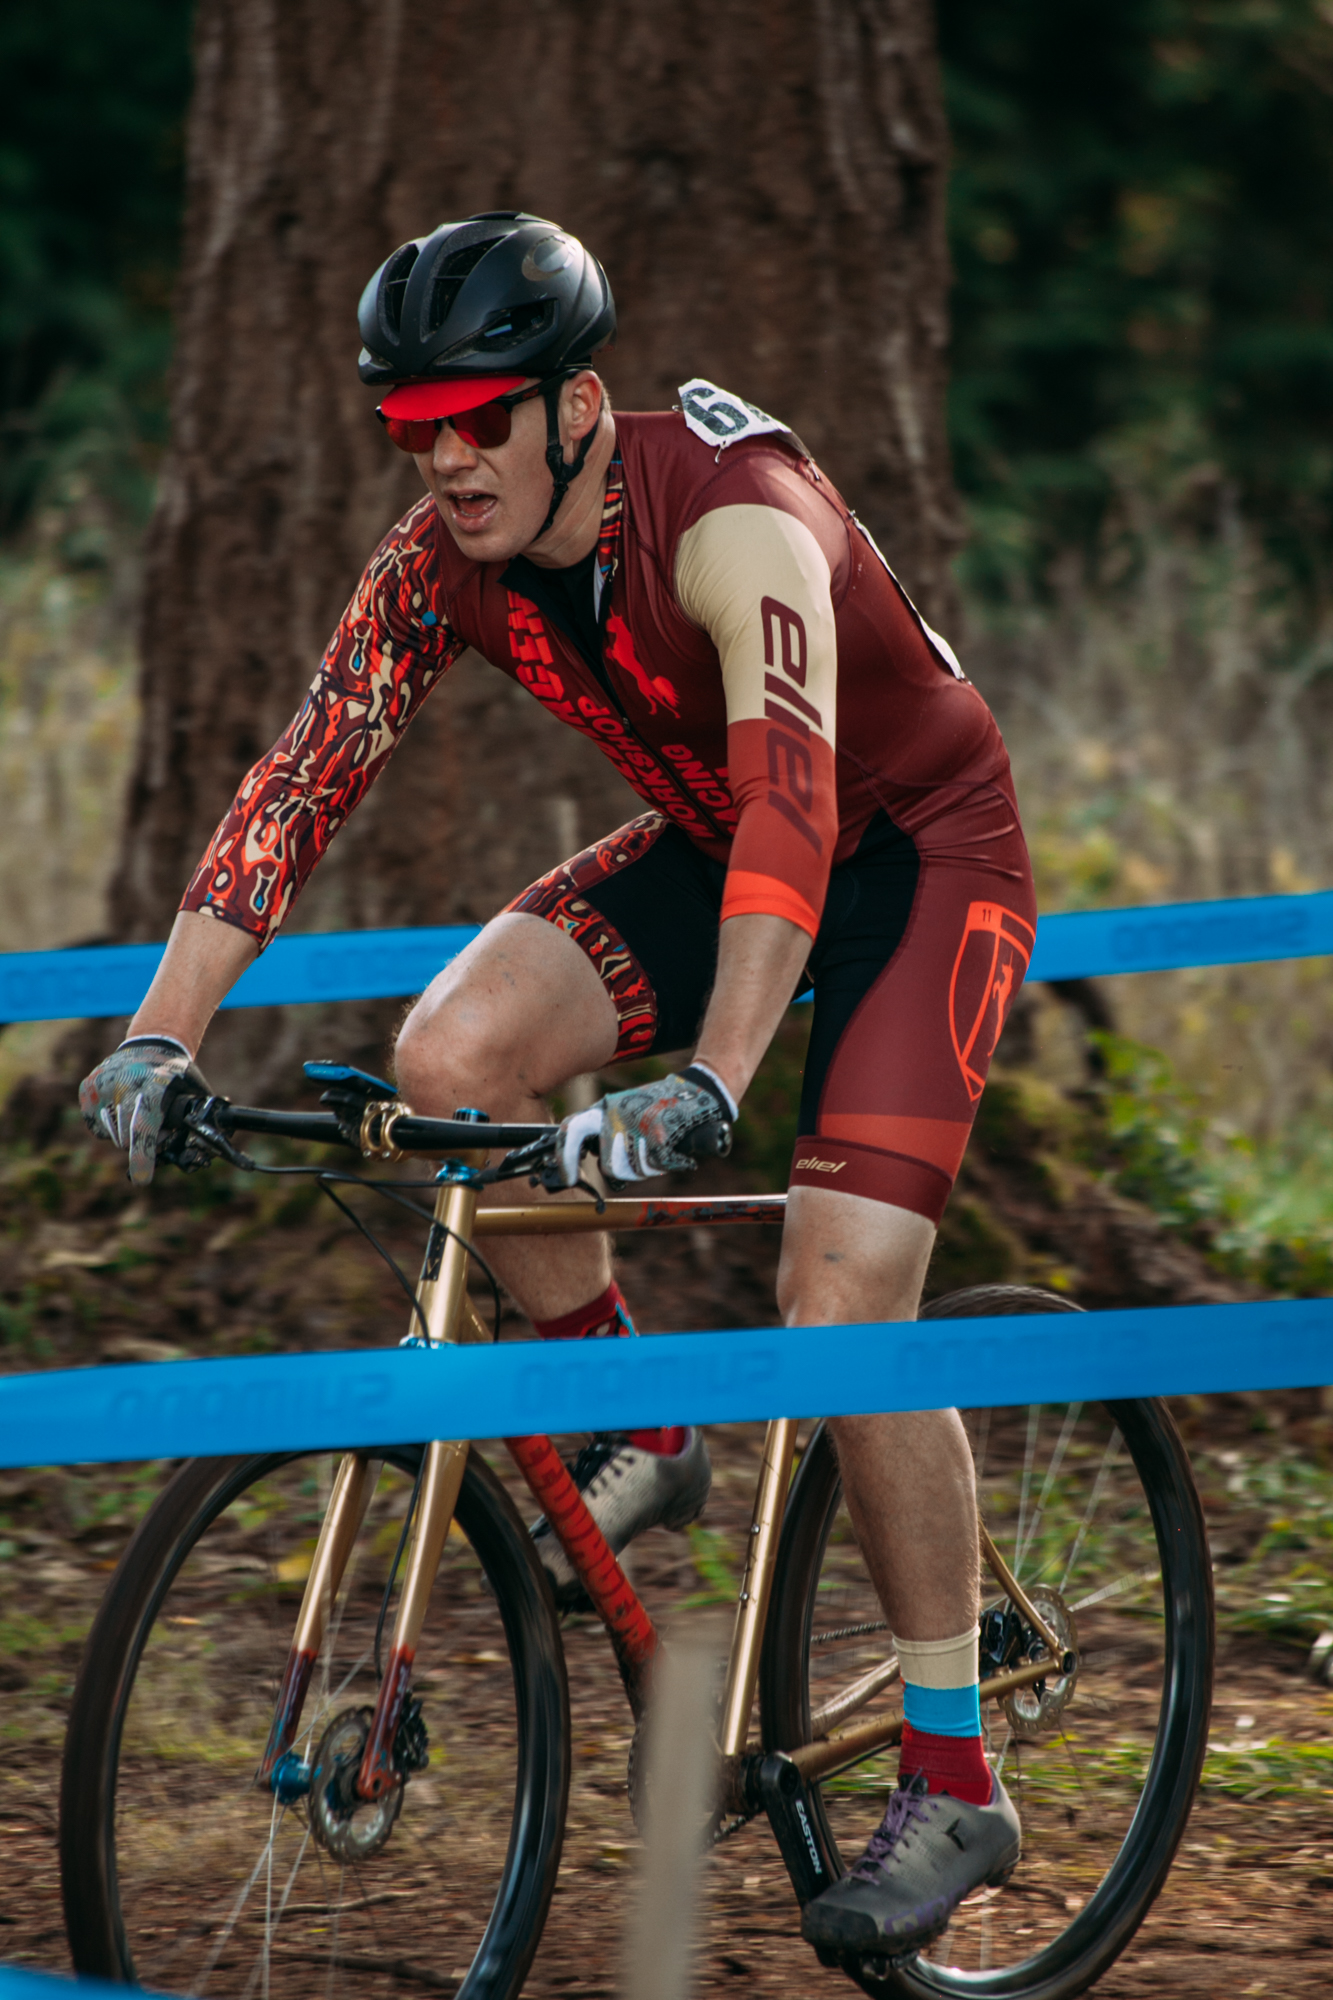 Cyclocross18_CCCX_RainierHS-163-mettlecycling.jpg